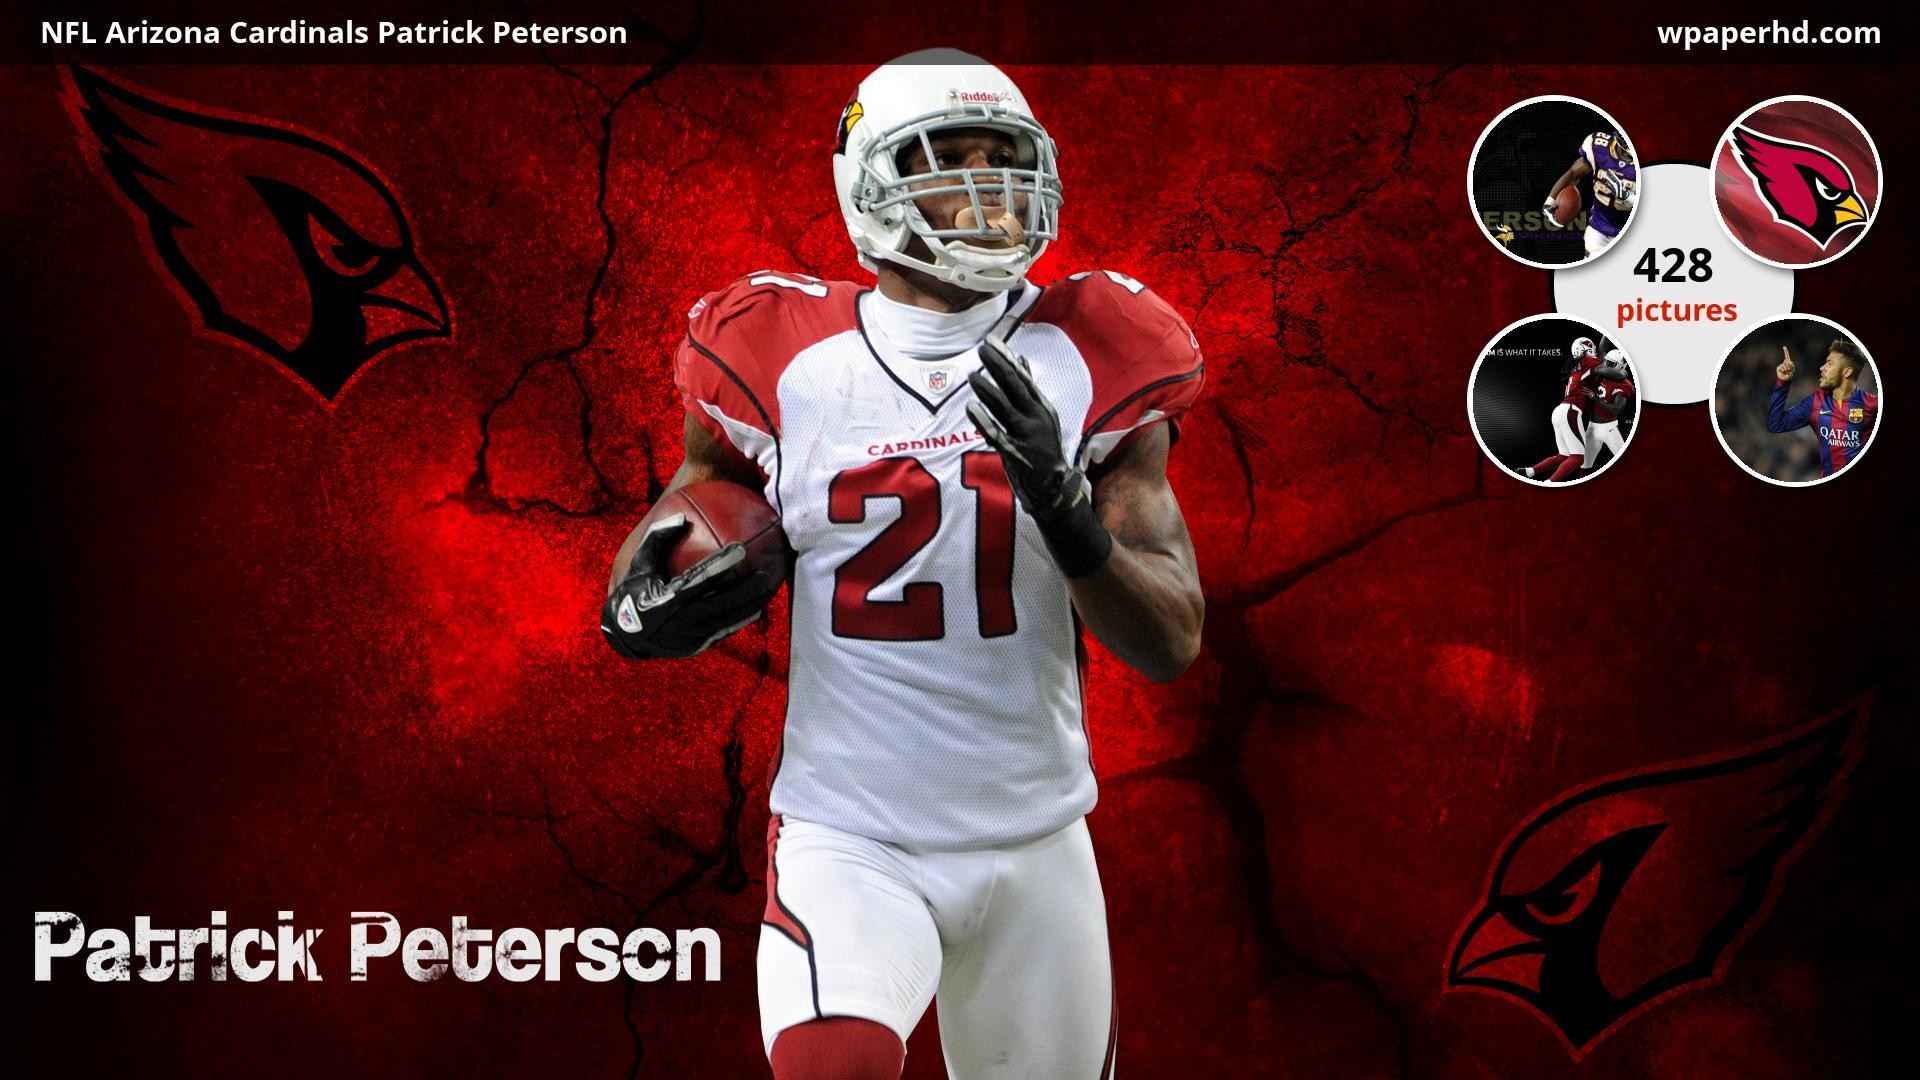 1920x1080 Description NFL Arizona Cardinals Patrick Peterson wallpaper from Football  category. You are on page with NFL Arizona Cardinals Patrick Peterson  wallpaper ...